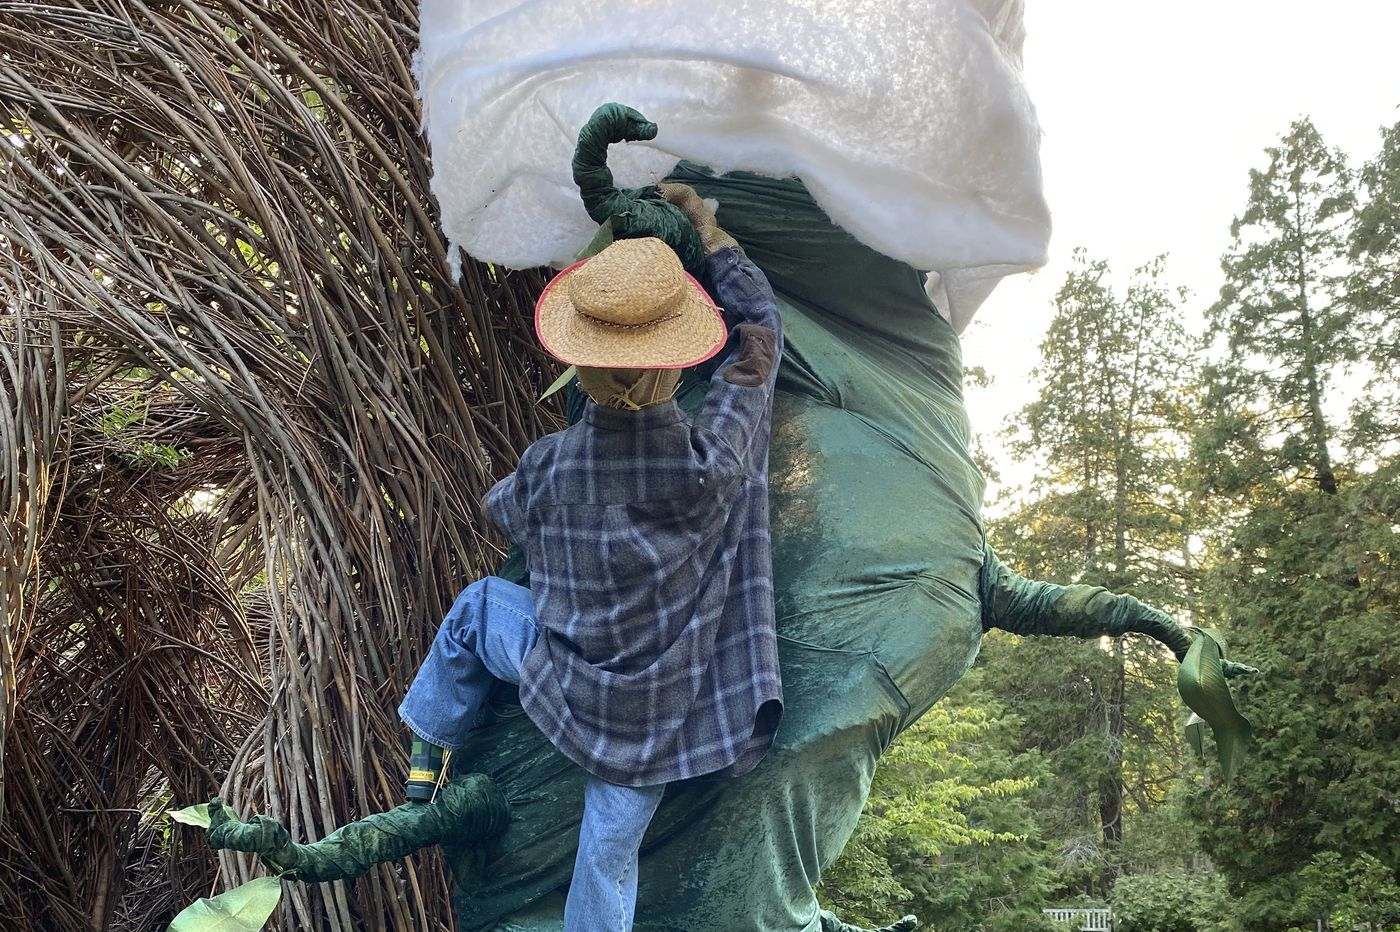 It's another packed week of fall outings for Philly families, from scarecrow walks to 'spooky' golf